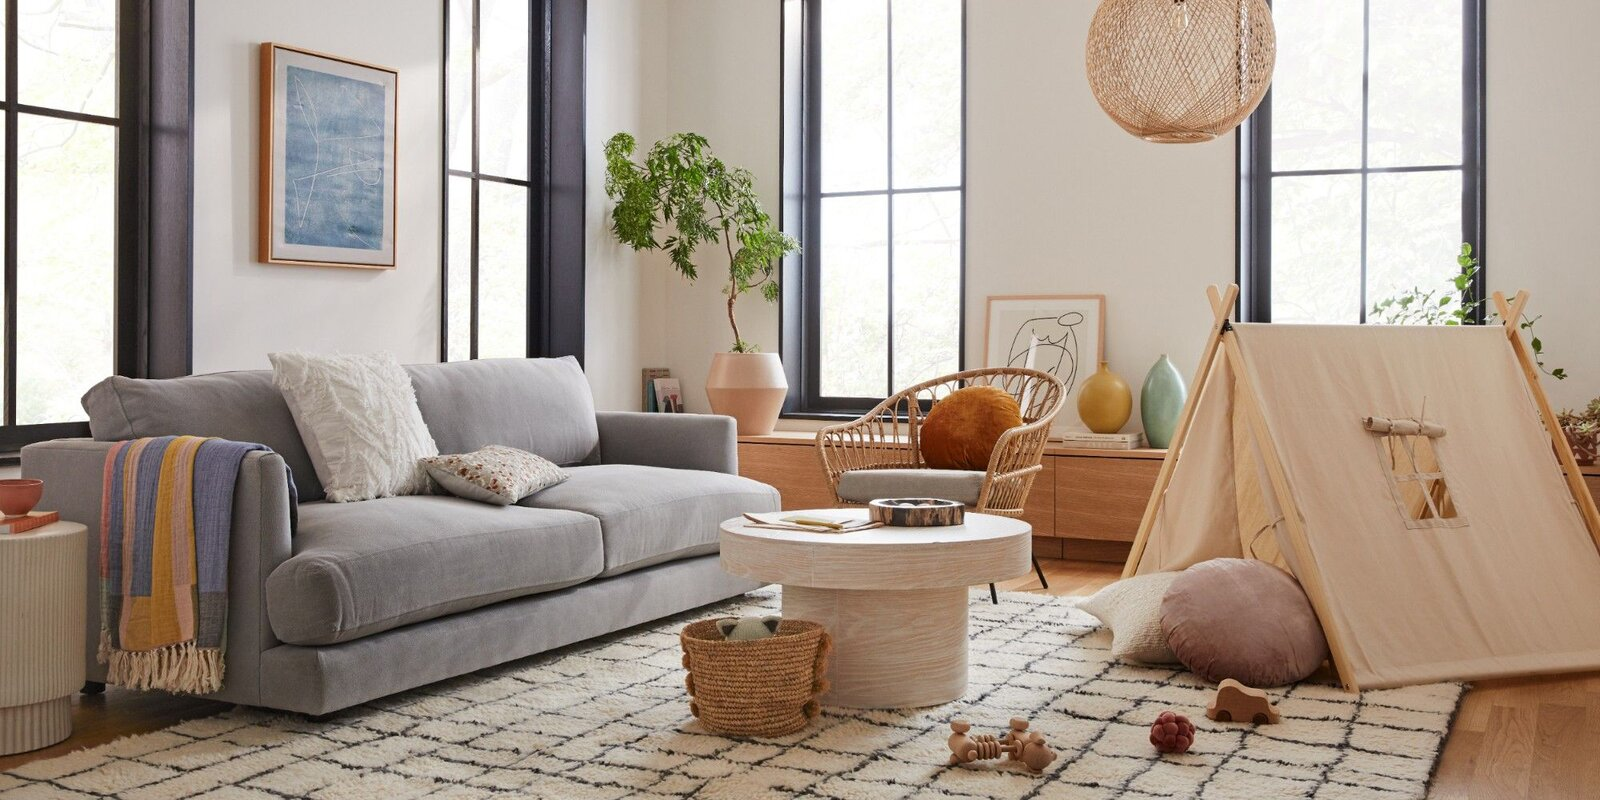 Photo 1 of 4 in West Elm Just Launched More Than 200 New Pieces of Kids' Furniture